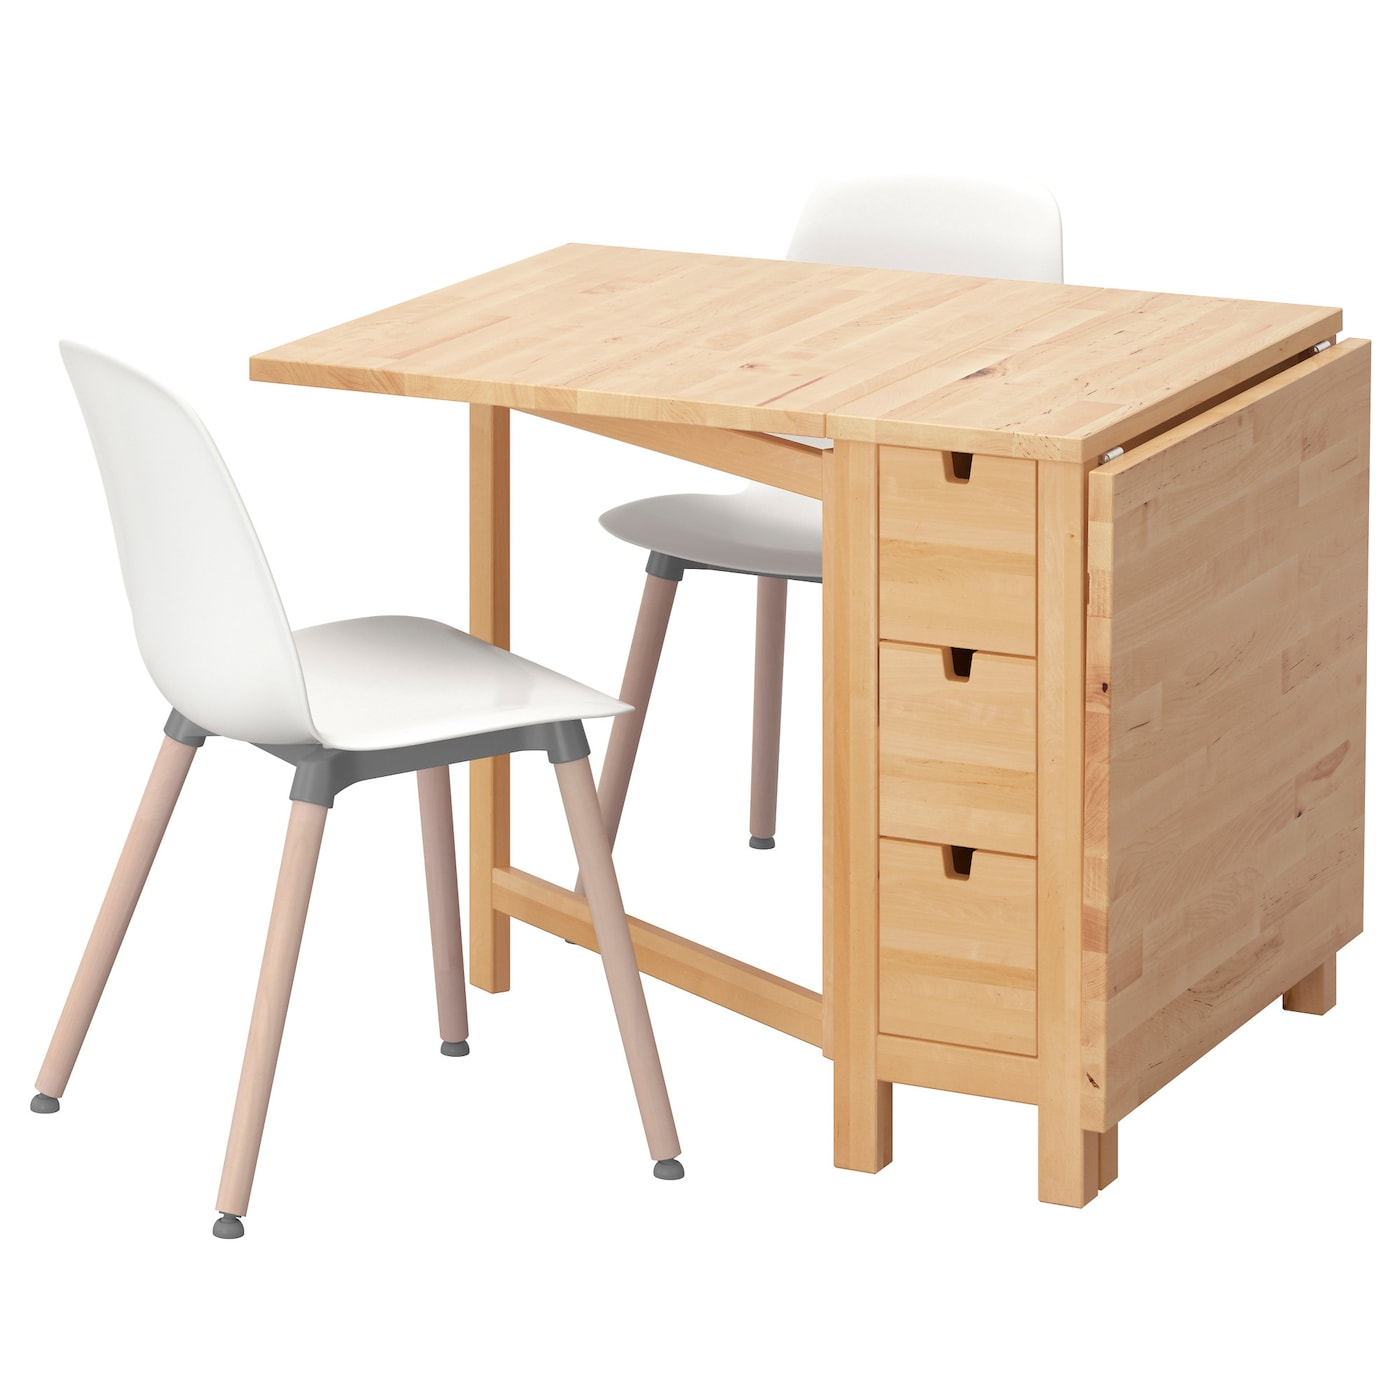 norden leifarne table et 2 chaises bouleau blanc 89 cm ikea. Black Bedroom Furniture Sets. Home Design Ideas